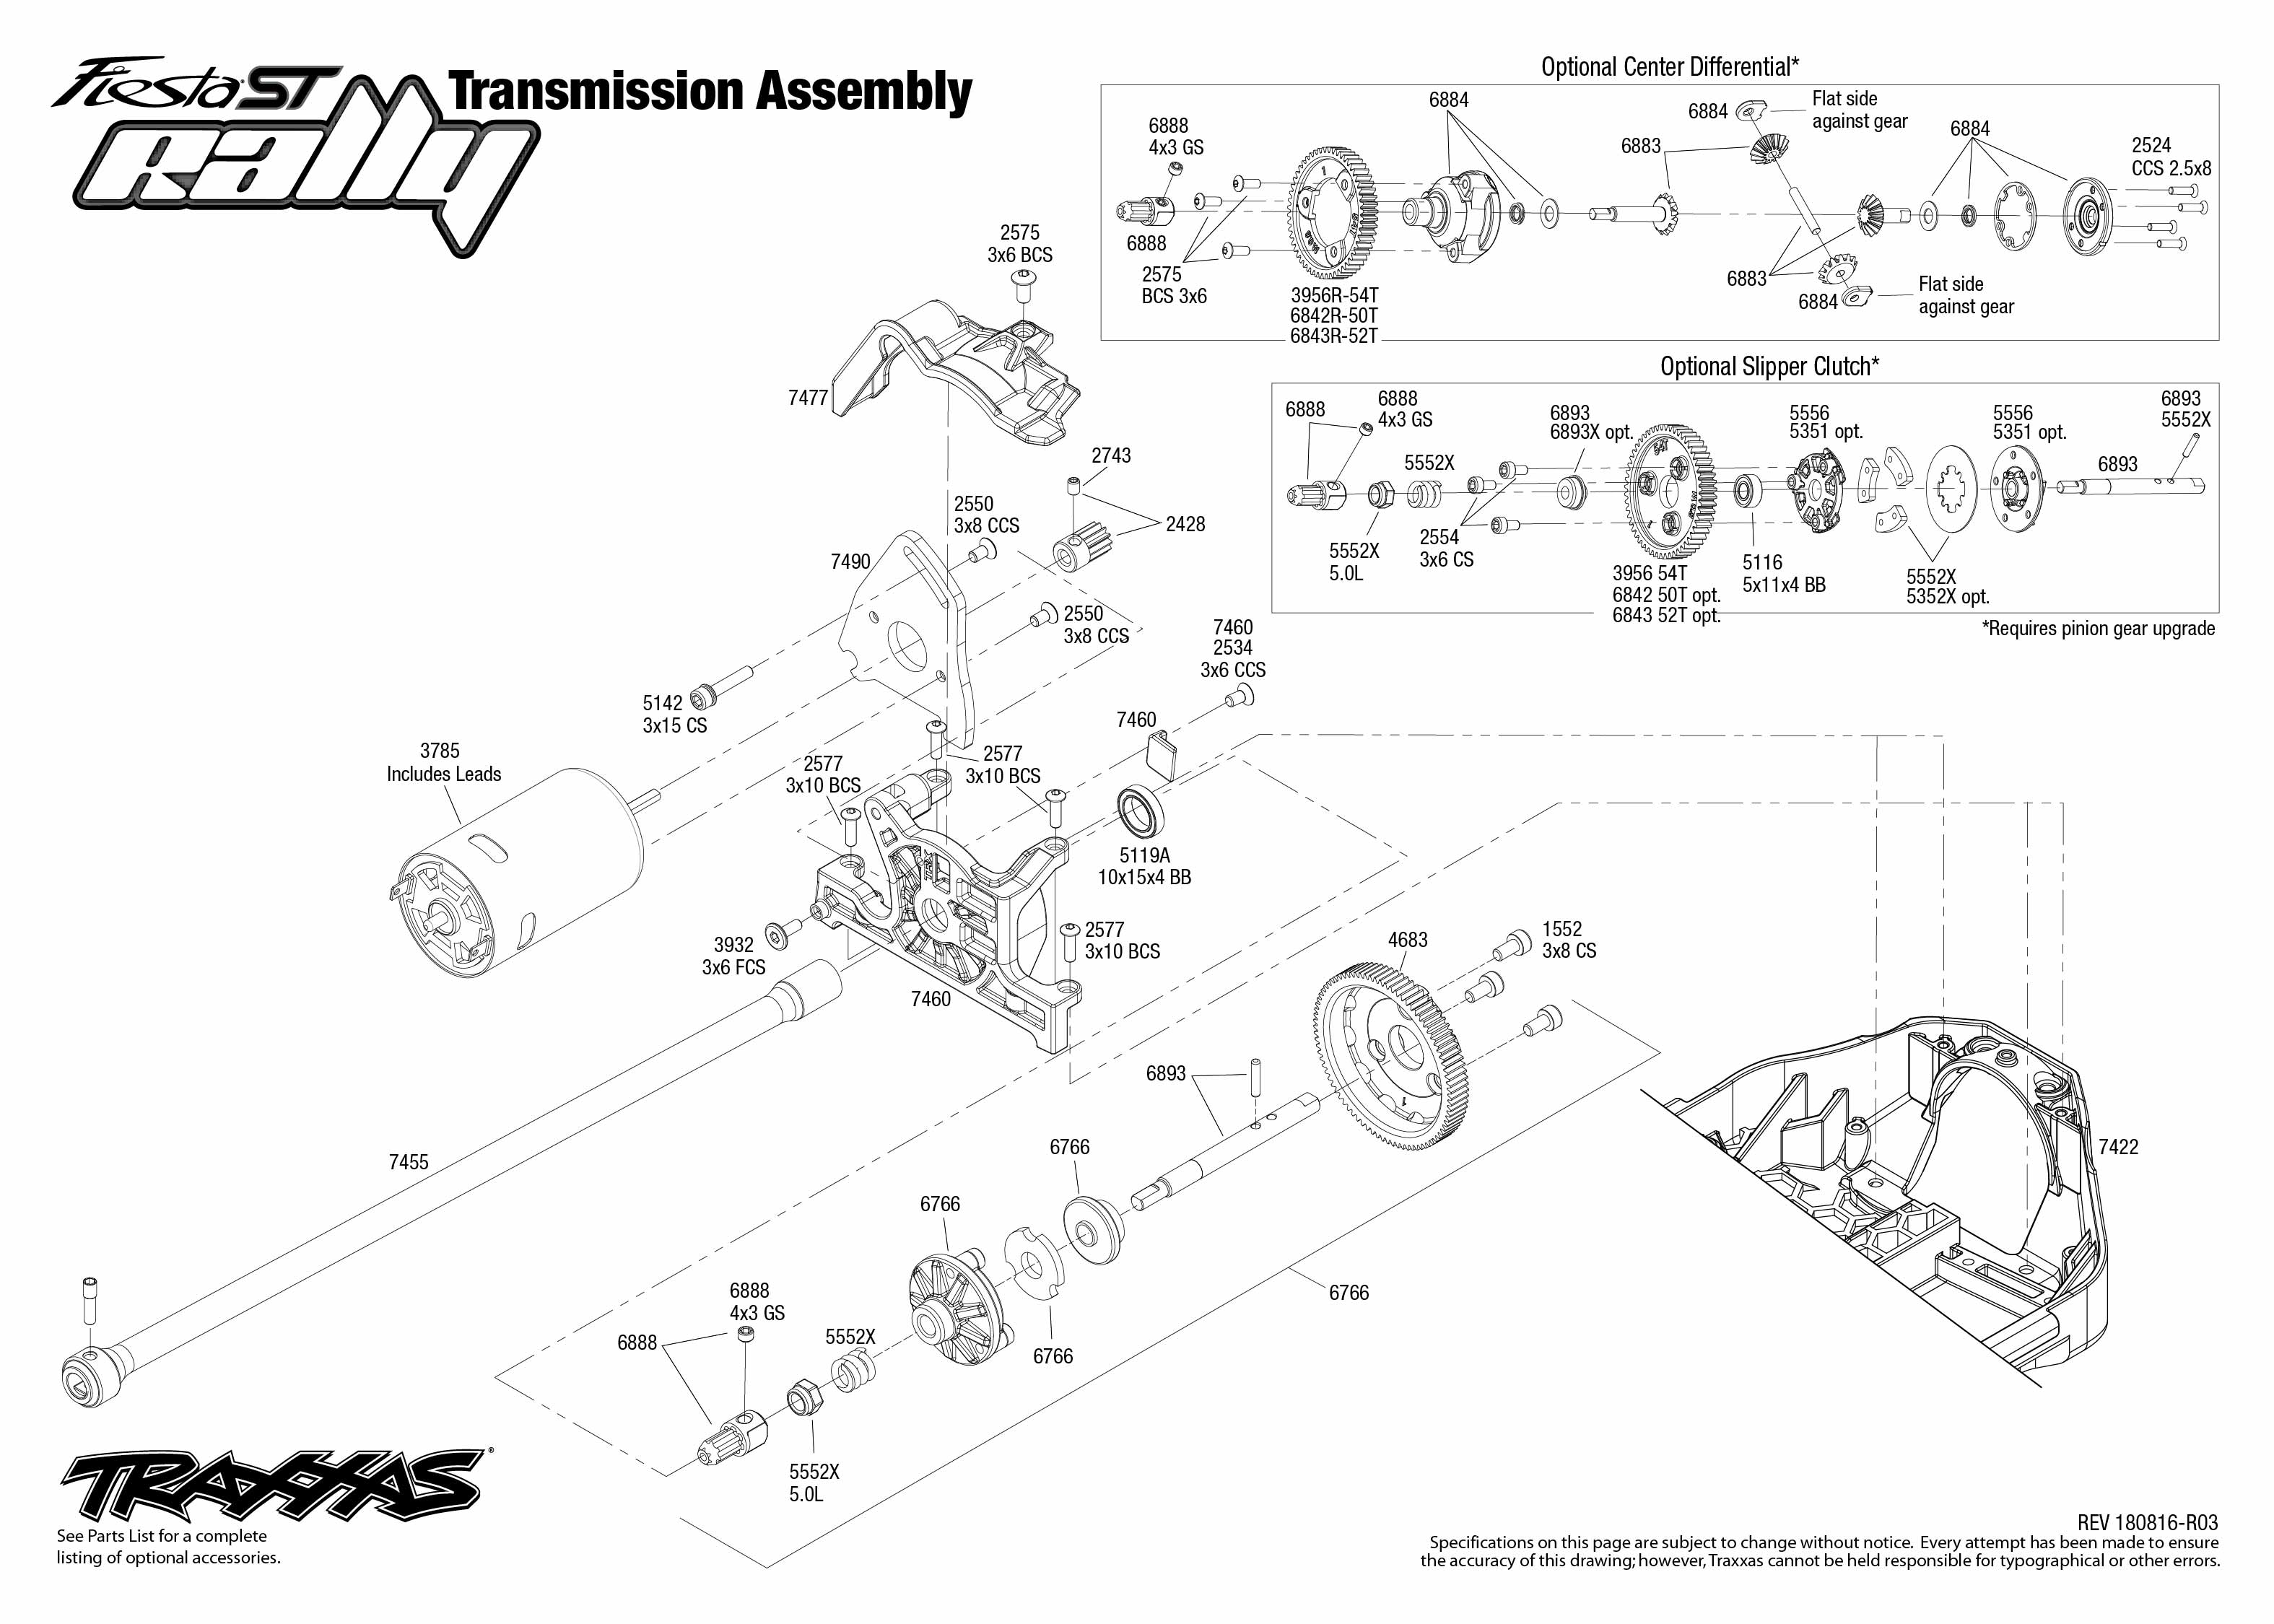 Ford Fiesta ST Rally (74054-6) Transmission Assembly Exploded View